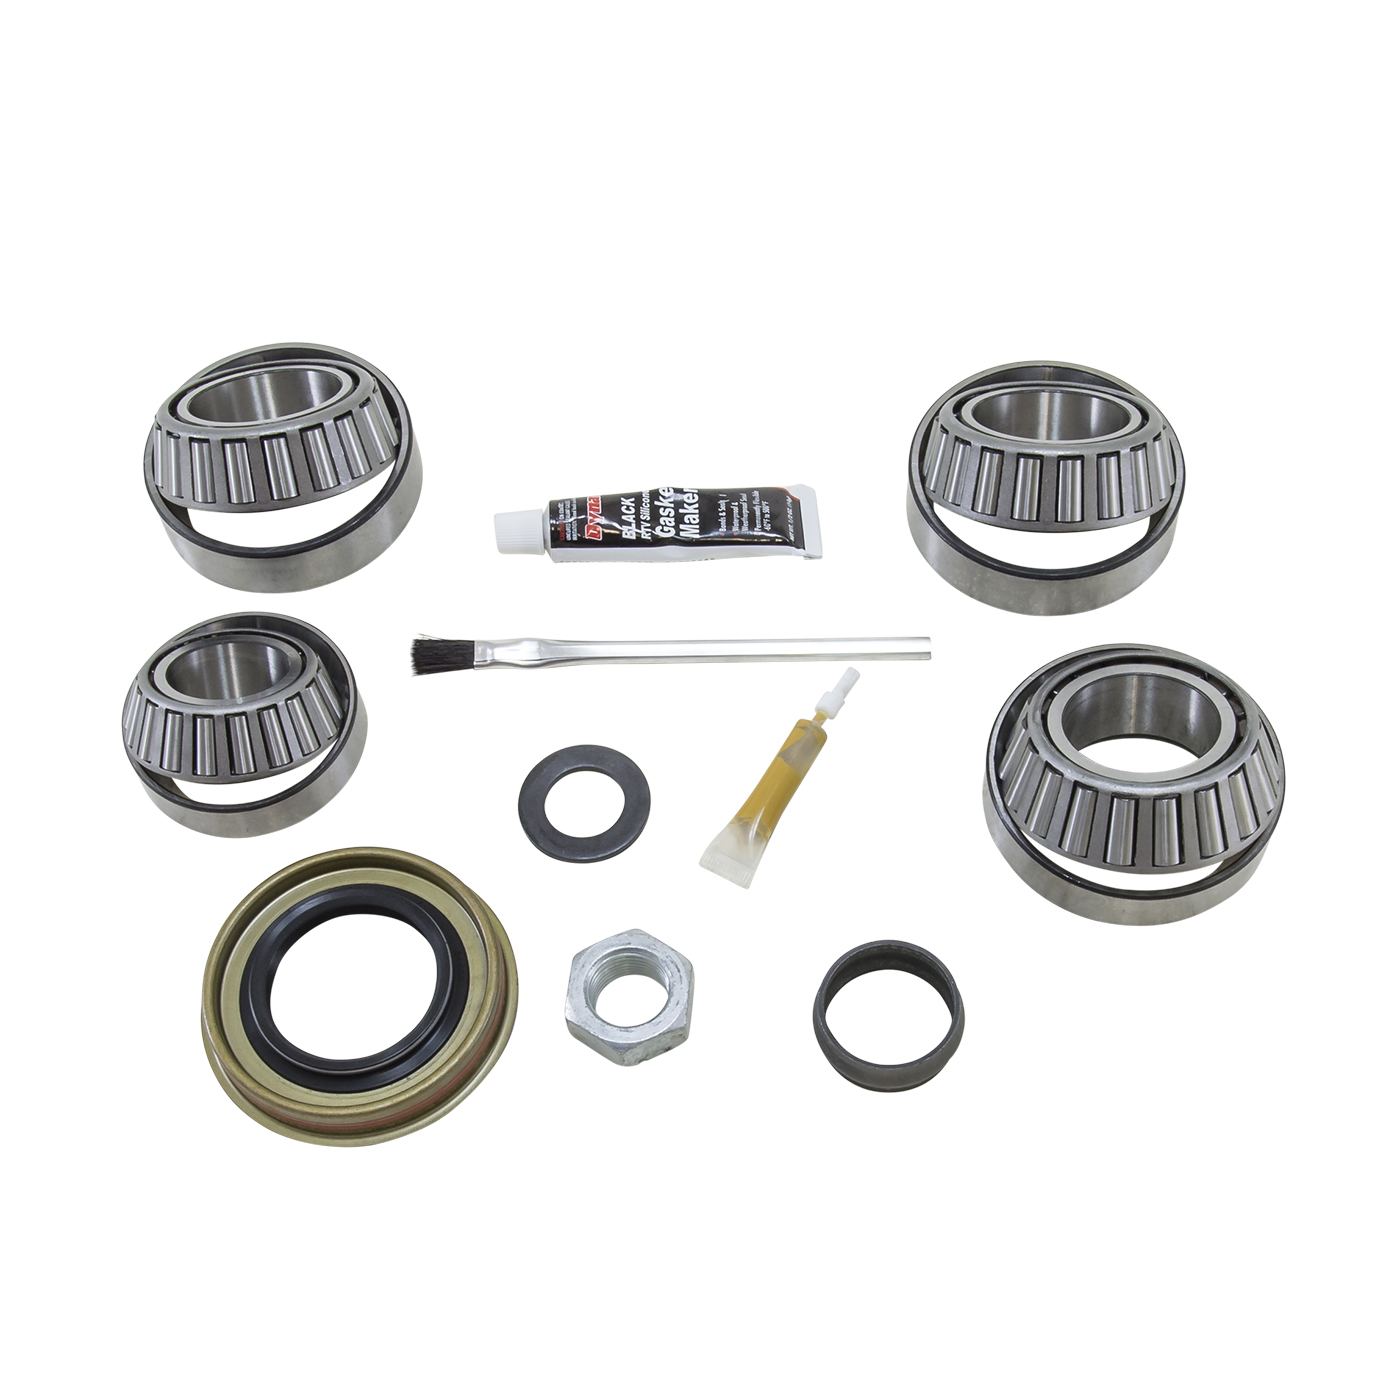 ZBKD44HD - USA Standard Bearing kit for Dana 44HD